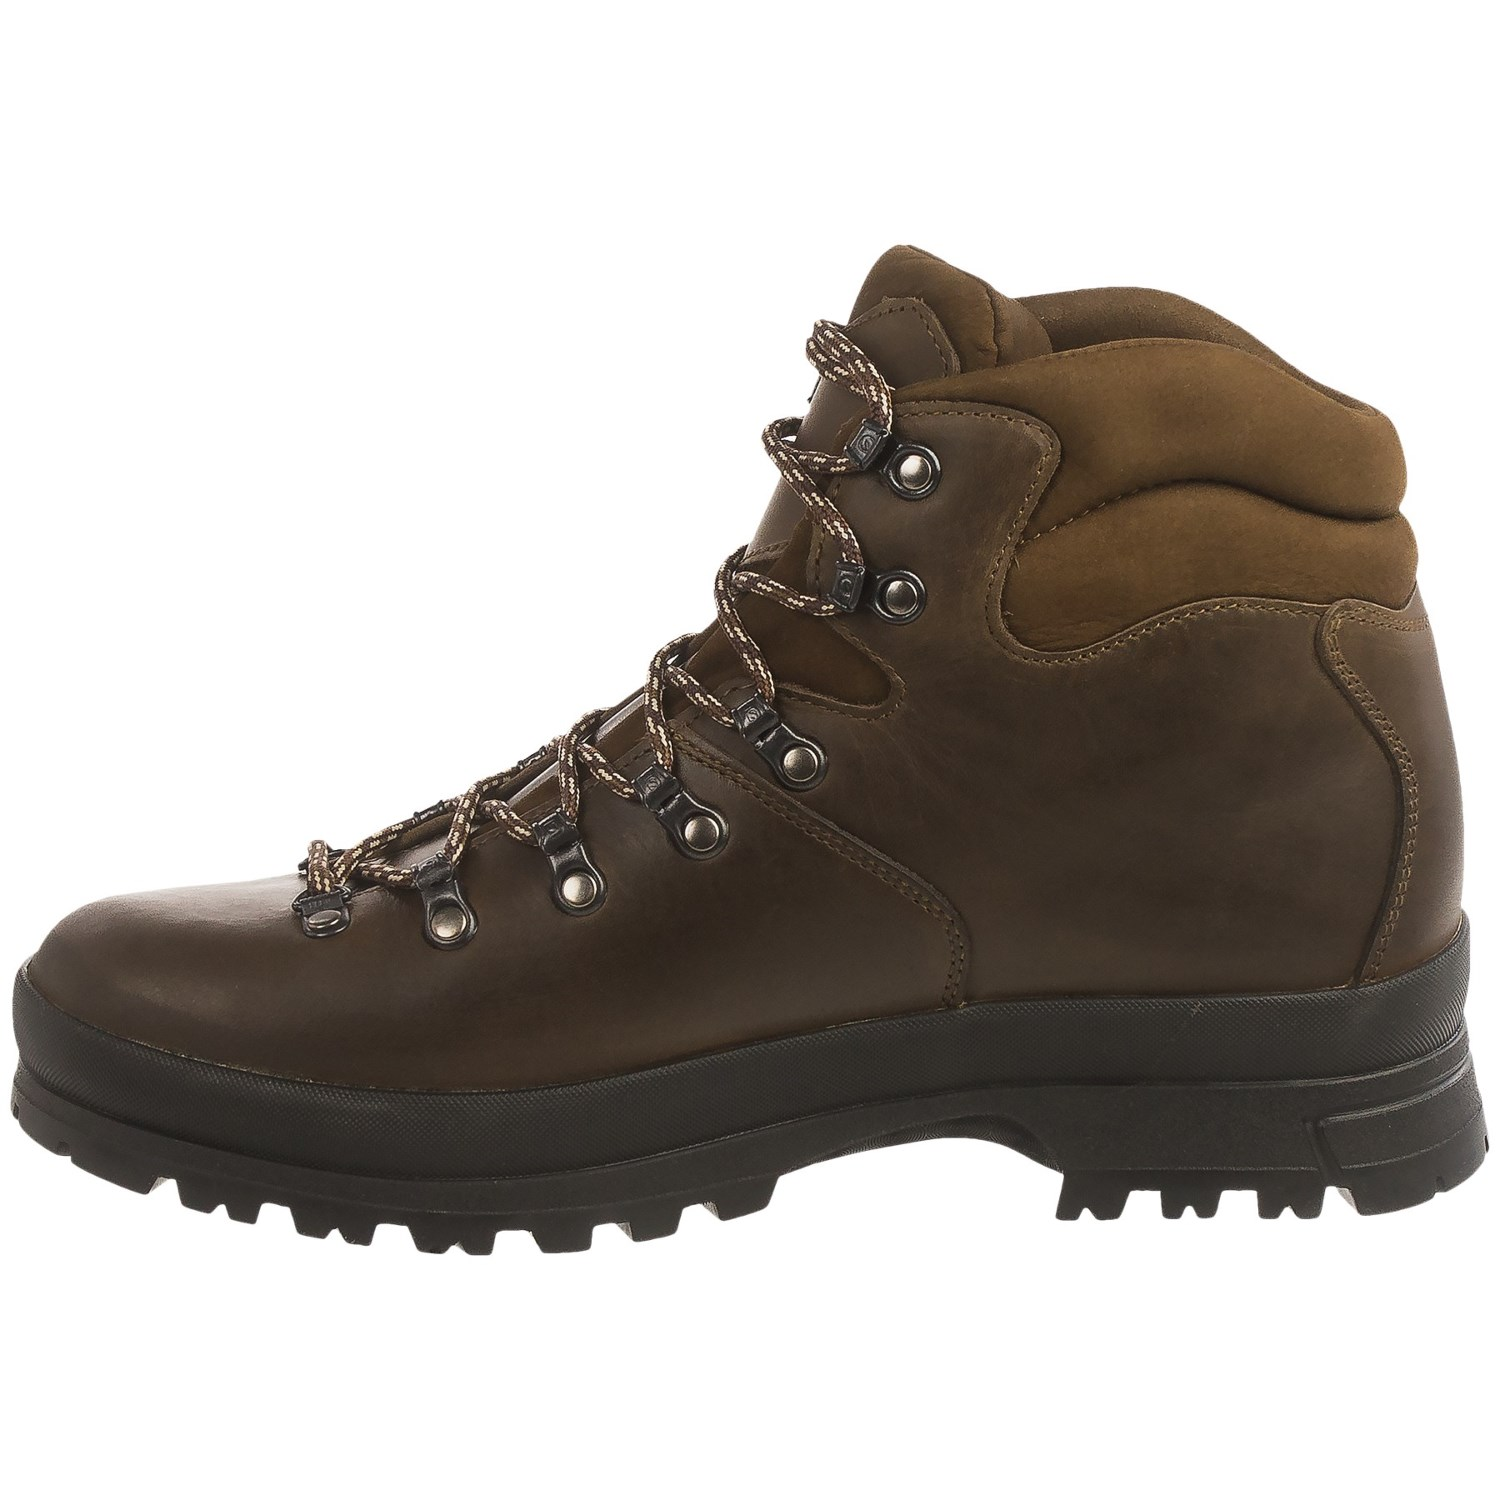 all leather hiking boots reviews